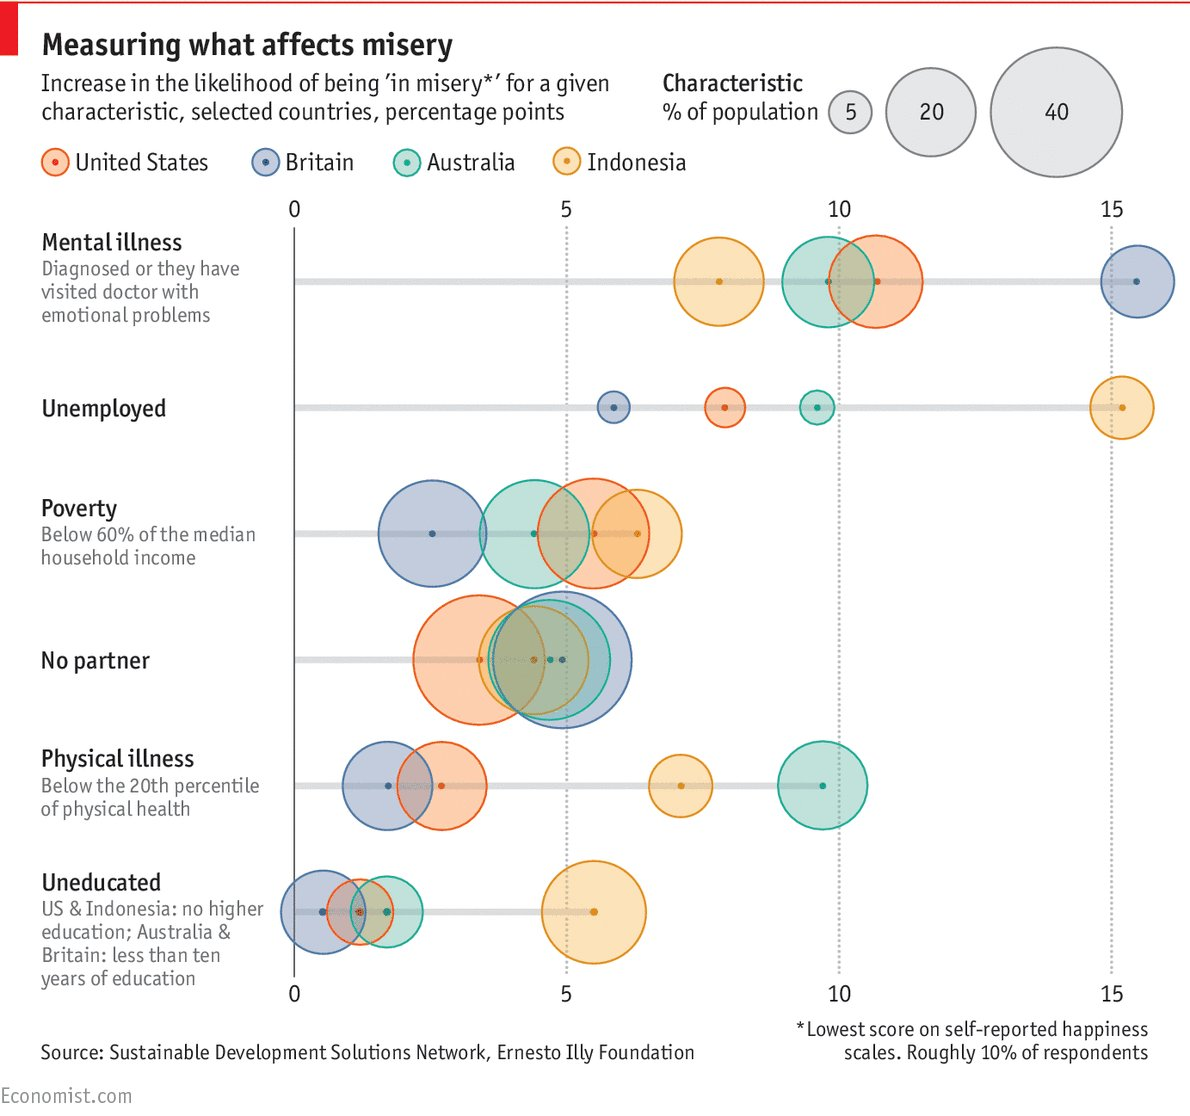 #mentalillness is a better #predictor of #misery than #poverty is. #theeconomist<br>http://pic.twitter.com/Yk4TPb034S